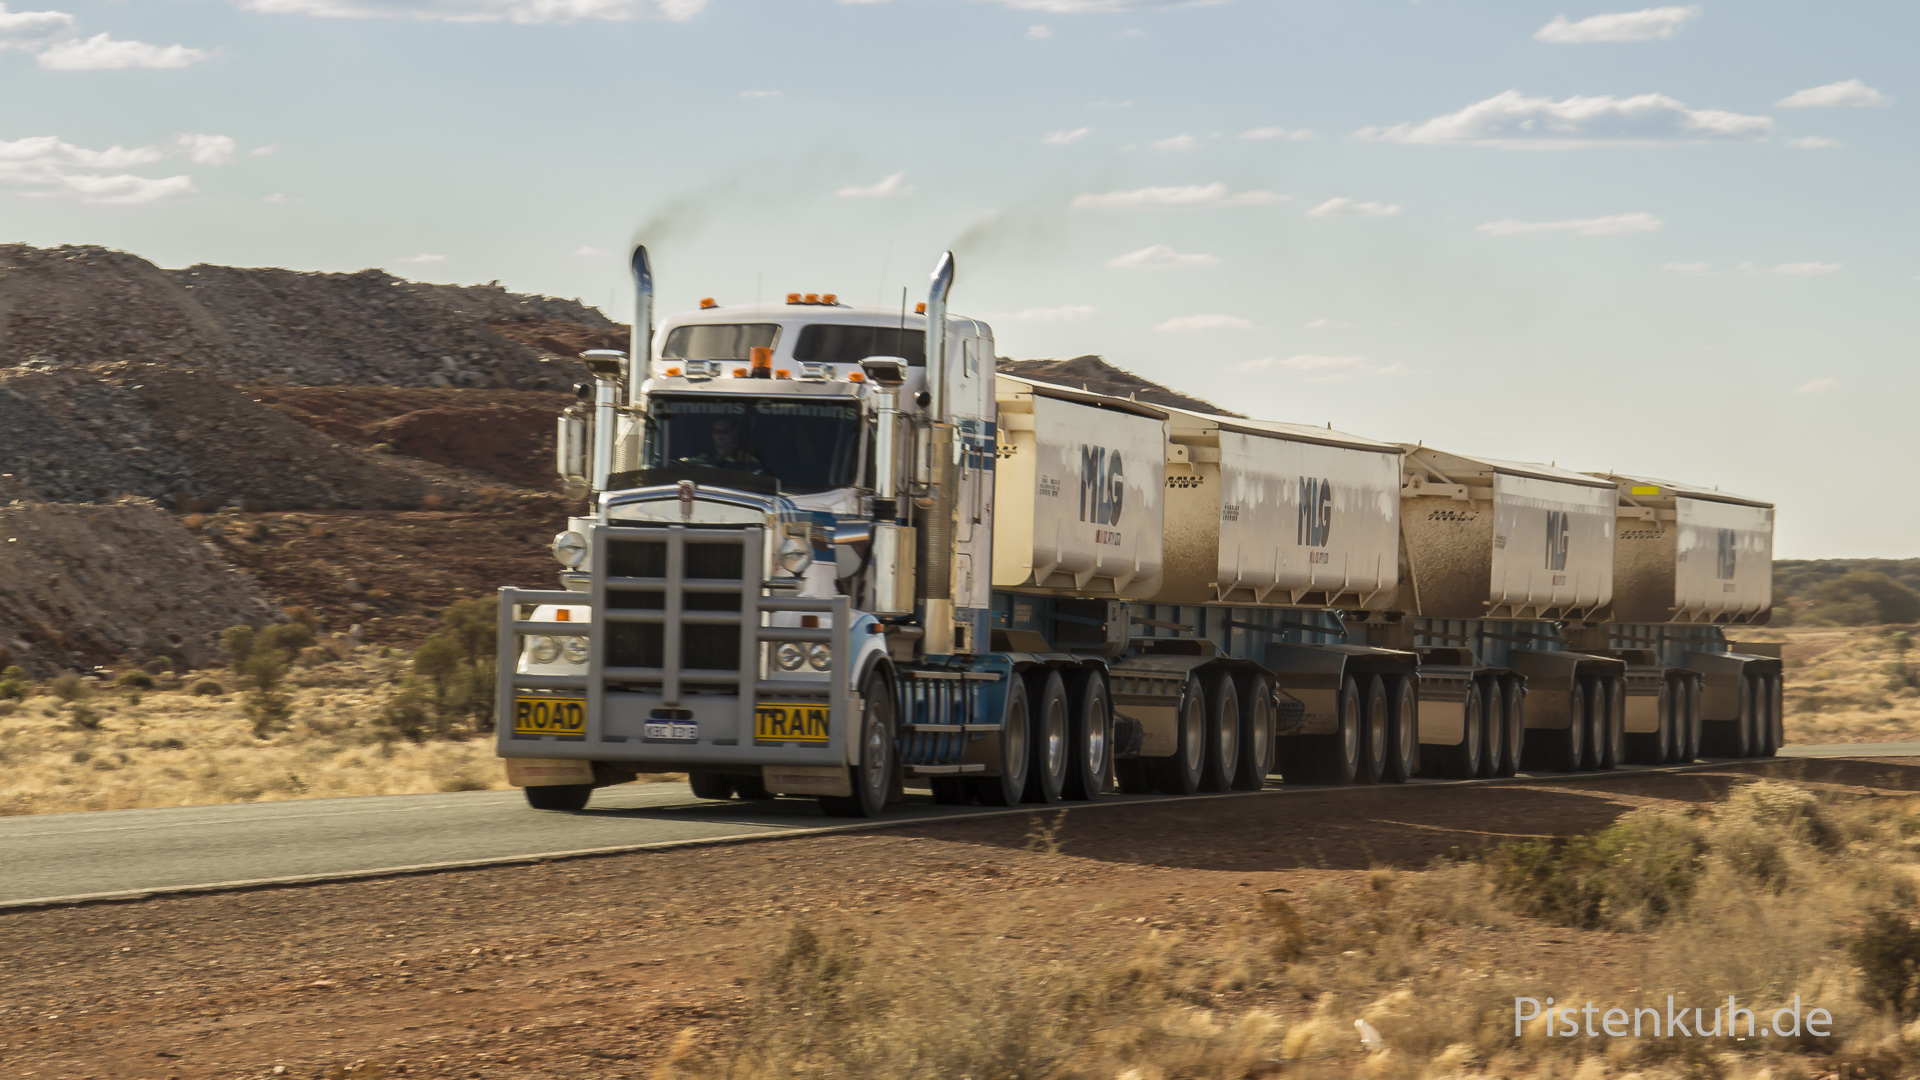 Road Train in Western-Australia